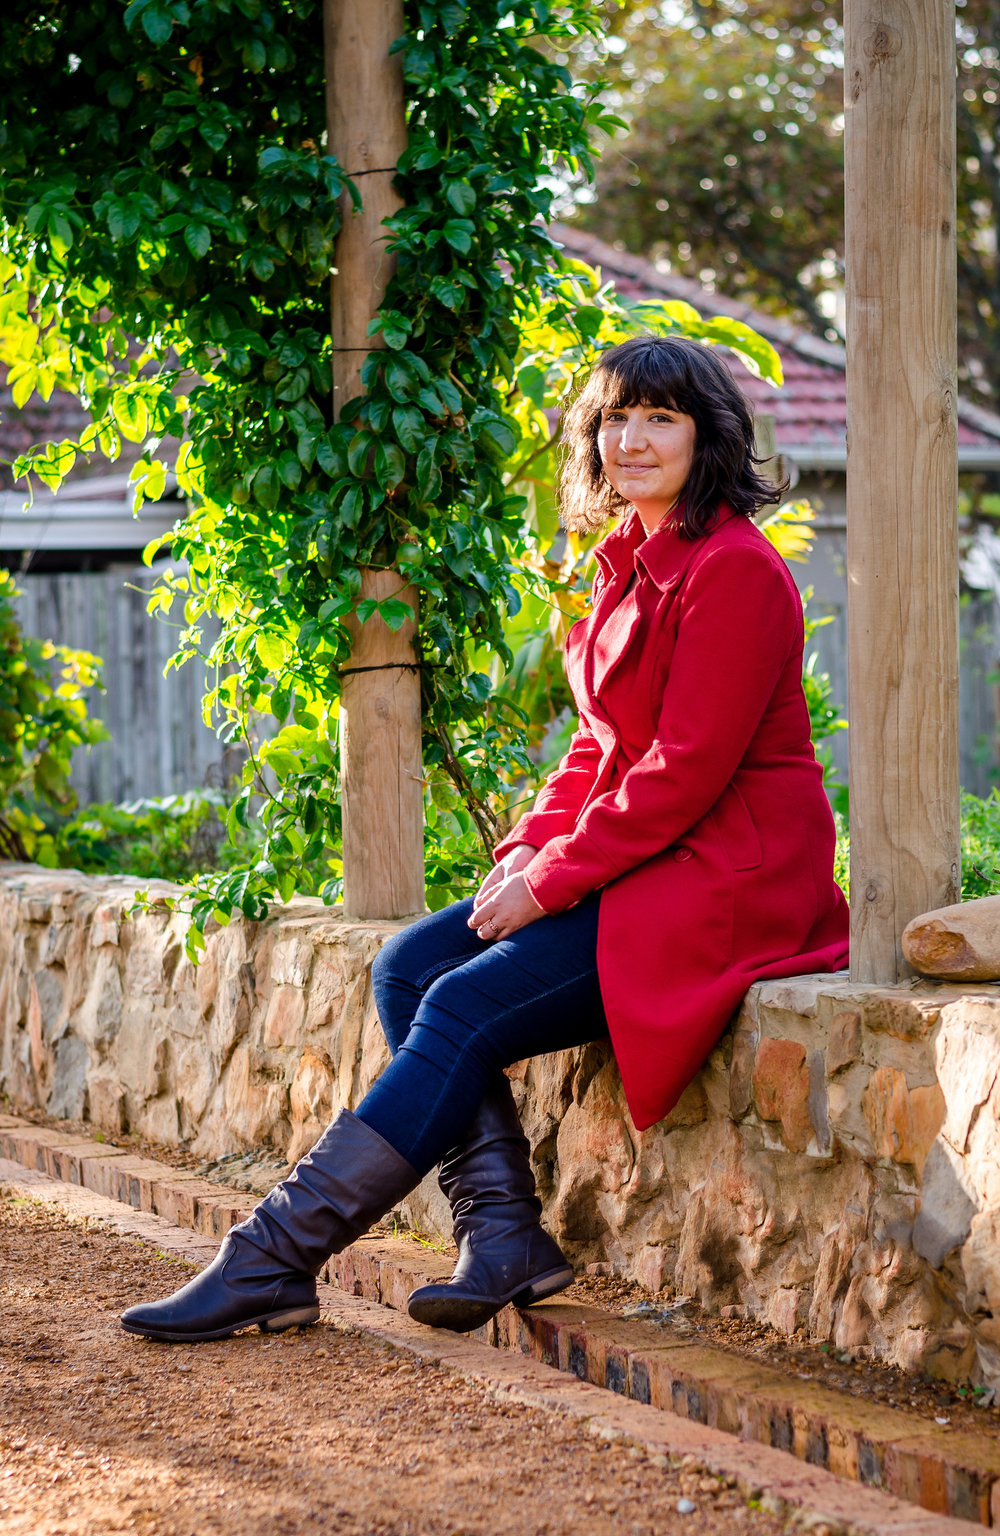 Image of Amy, Of Larks contributing writer, sitting on the edge of a garden wall.